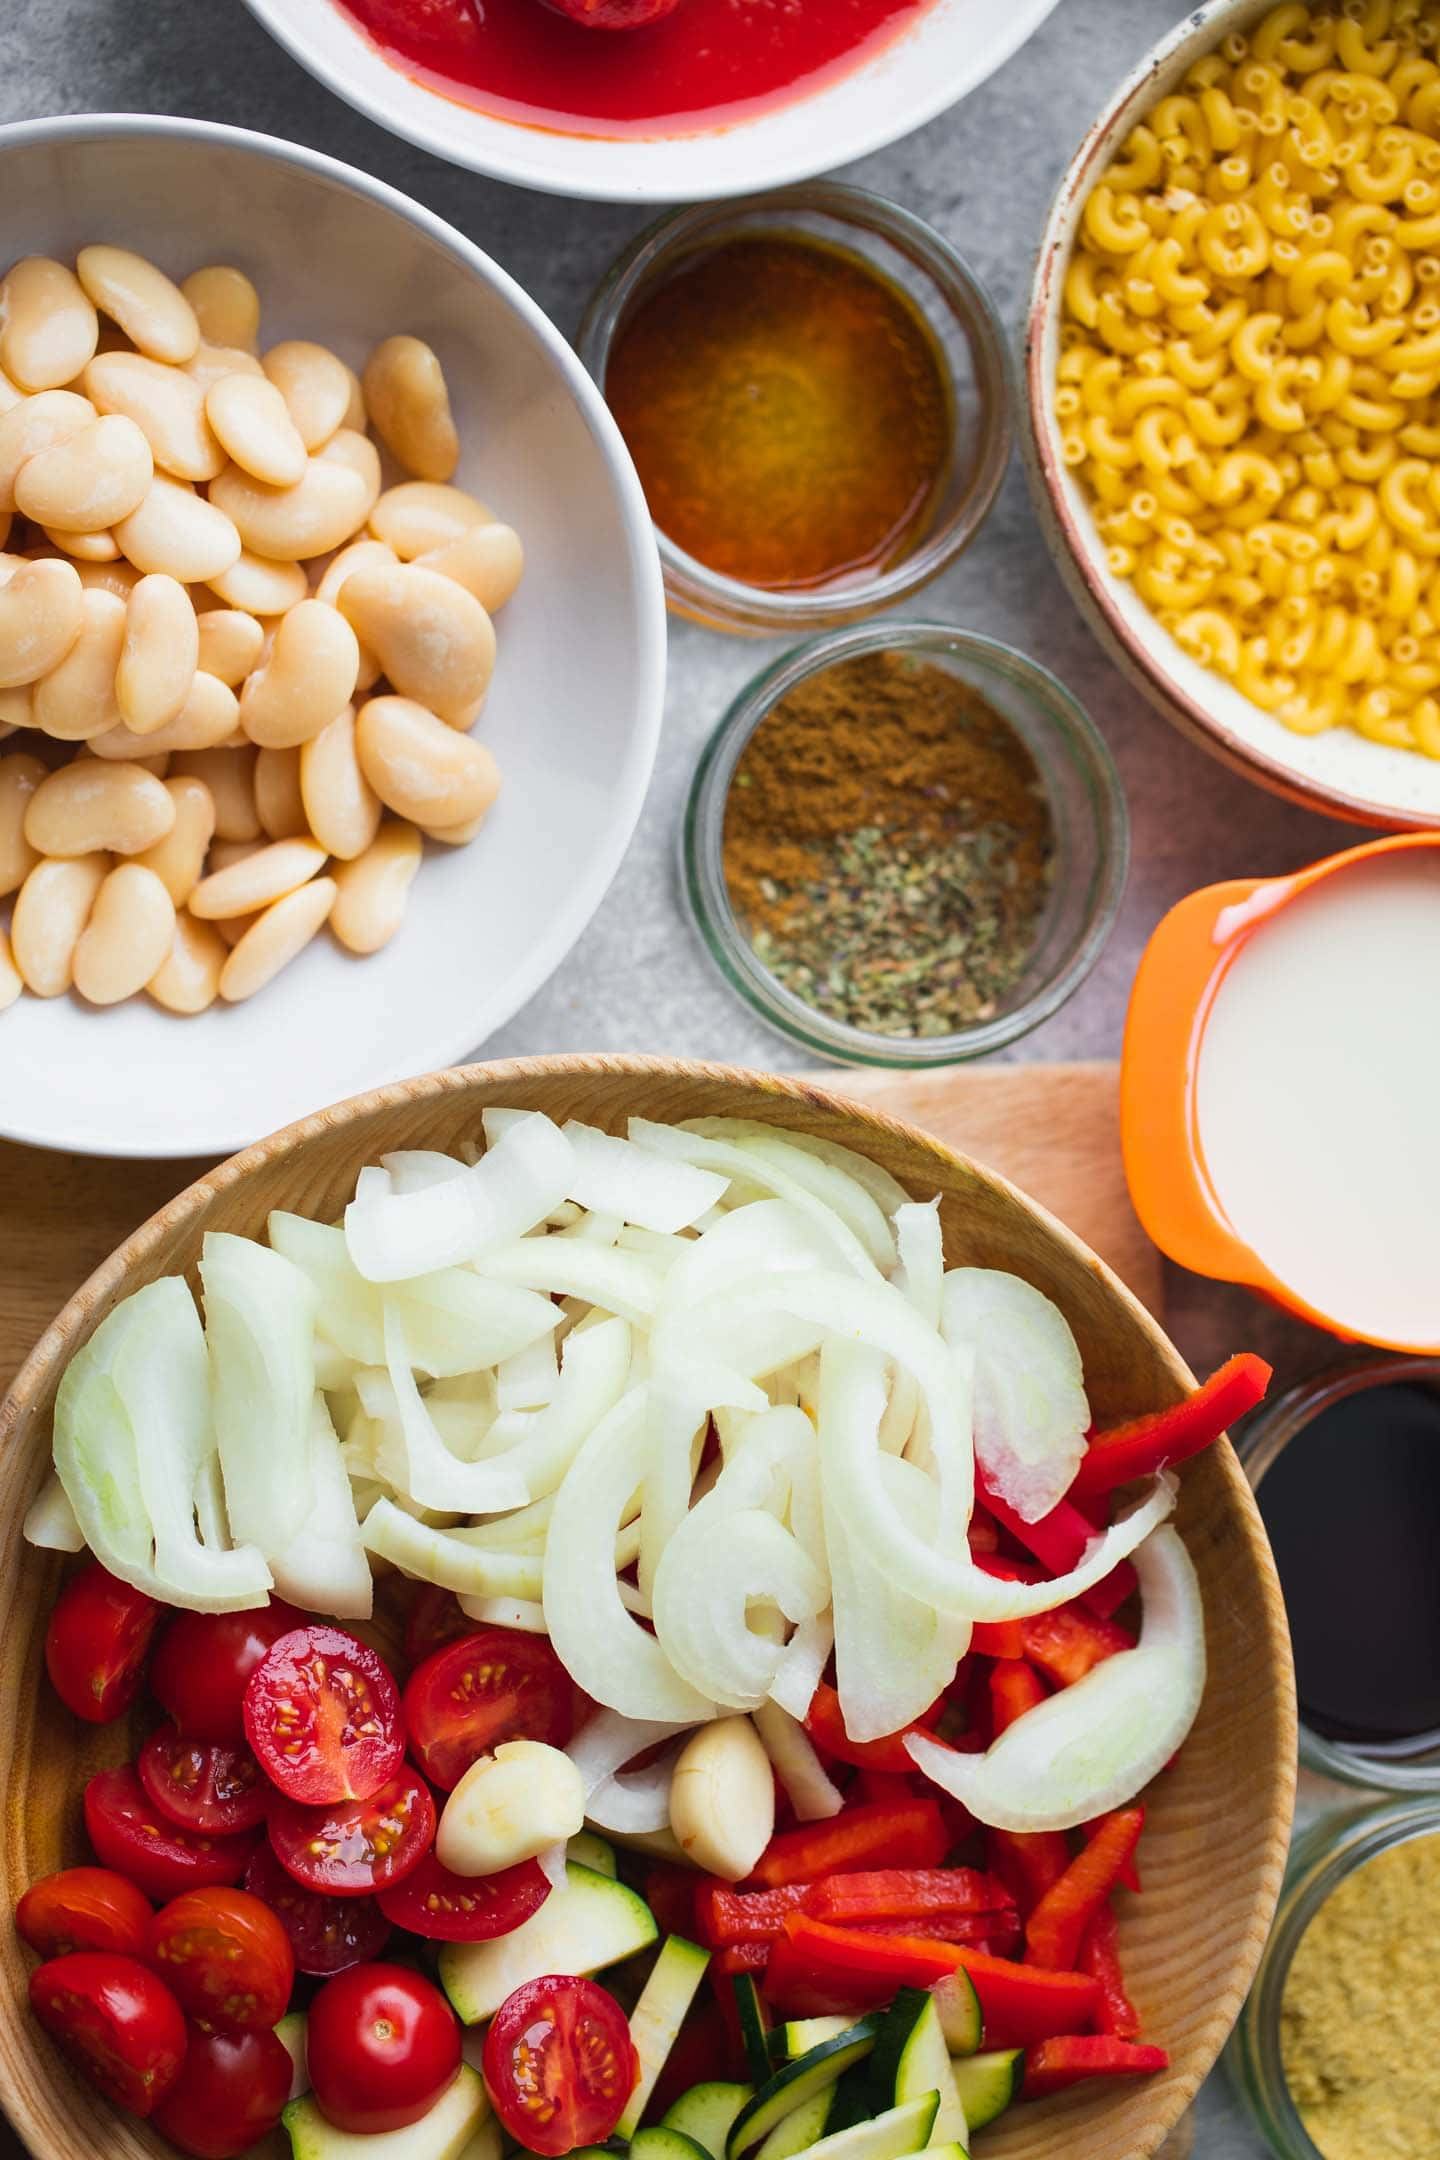 Ingredients for vegan minestrone soup